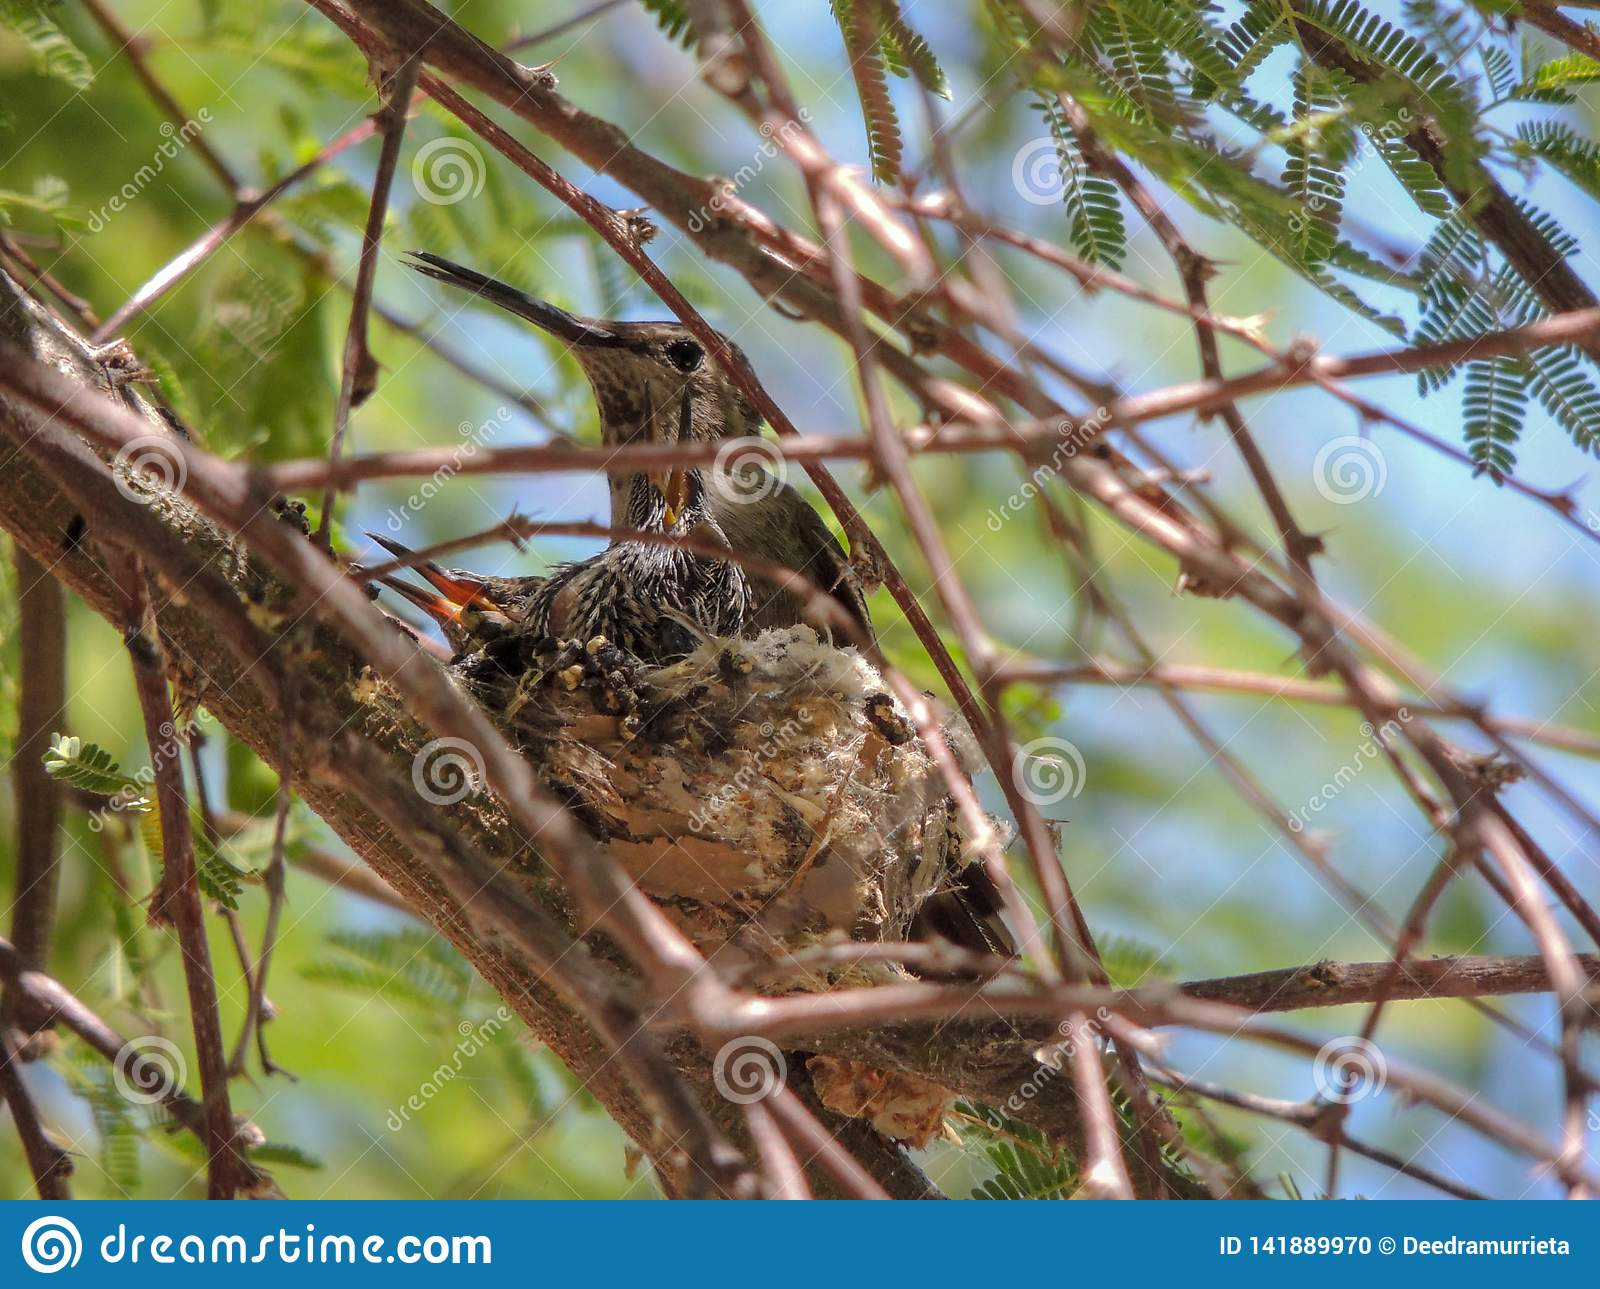 Hummingbird nest with chicks in mesquite